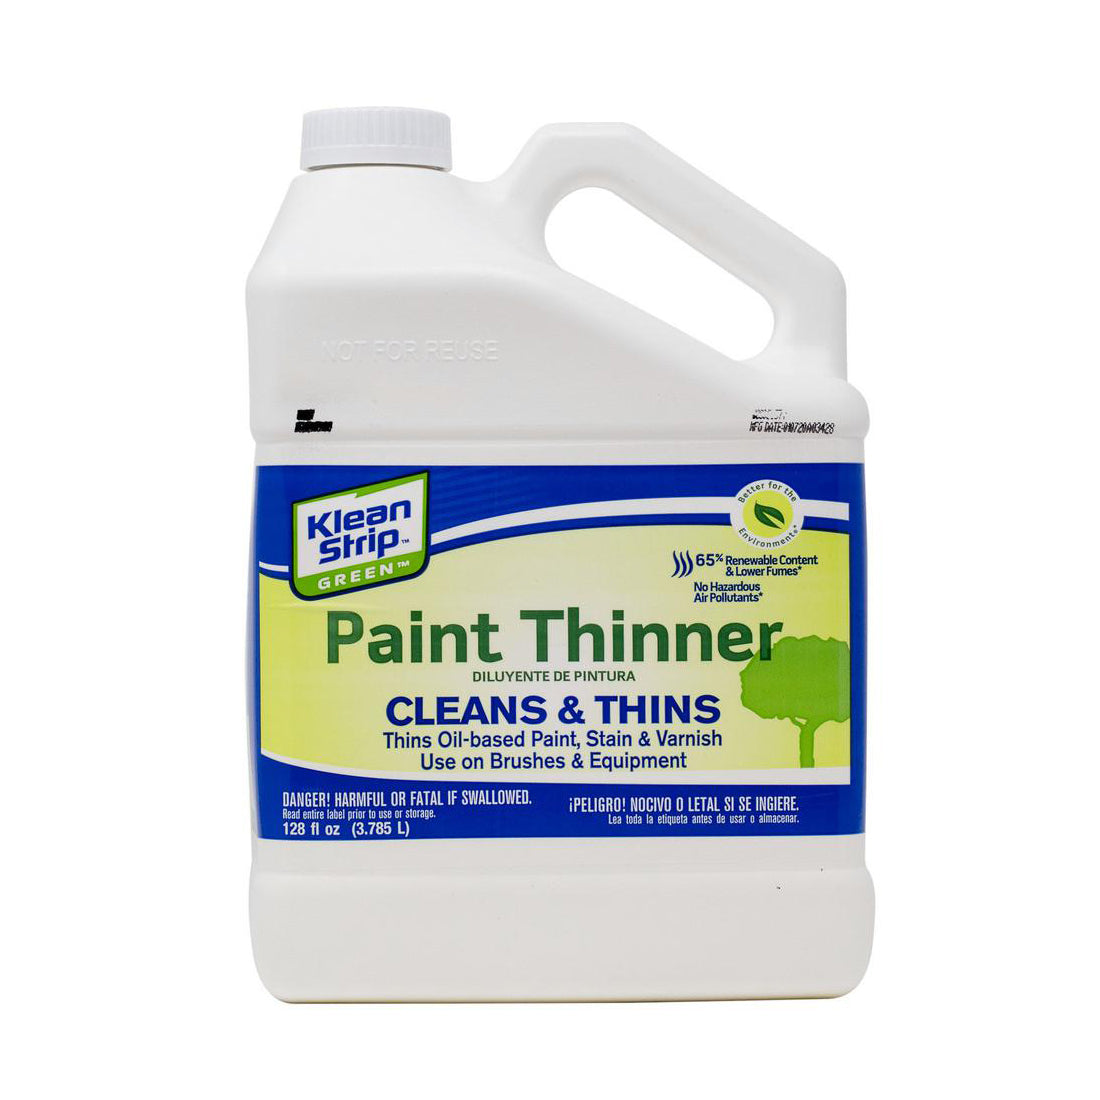 Kleen Strip Green Paint Thinner, available at Harris Paints and BH Paints in the Caribbean.